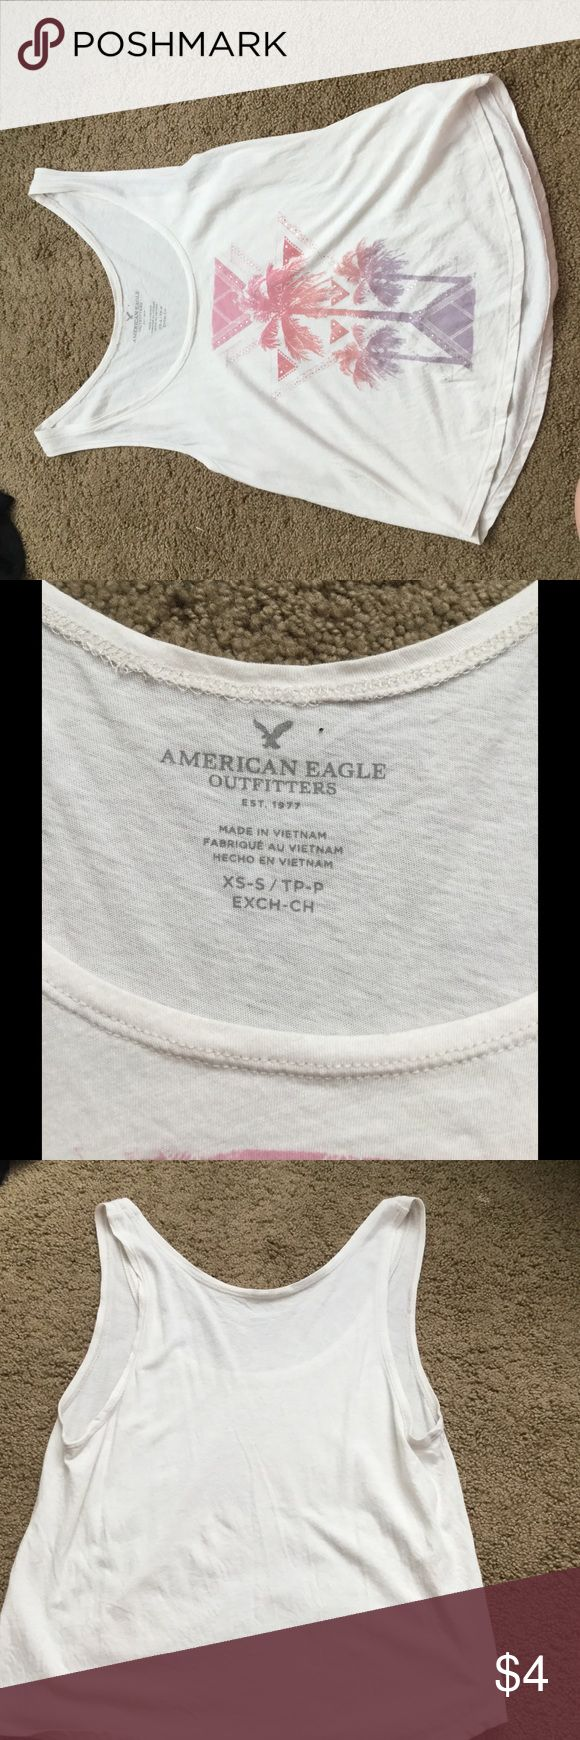 American Eagle Summer Palm Tree Tank Top * What you are viewing is a pre-owned women's size XS American Eagle Tank Top.   *Beautiful pink, orange (salmon), and purple design on the front.   *Light-weight and perfect for spring/summer.   *While it is pre-owned, it has only been worn 2-3 times and looks and feels just like new.   *Would go great with the black American Eagle super-stretch shorts that I also have for sale! American Eagle Outfitters Tops Tank Tops